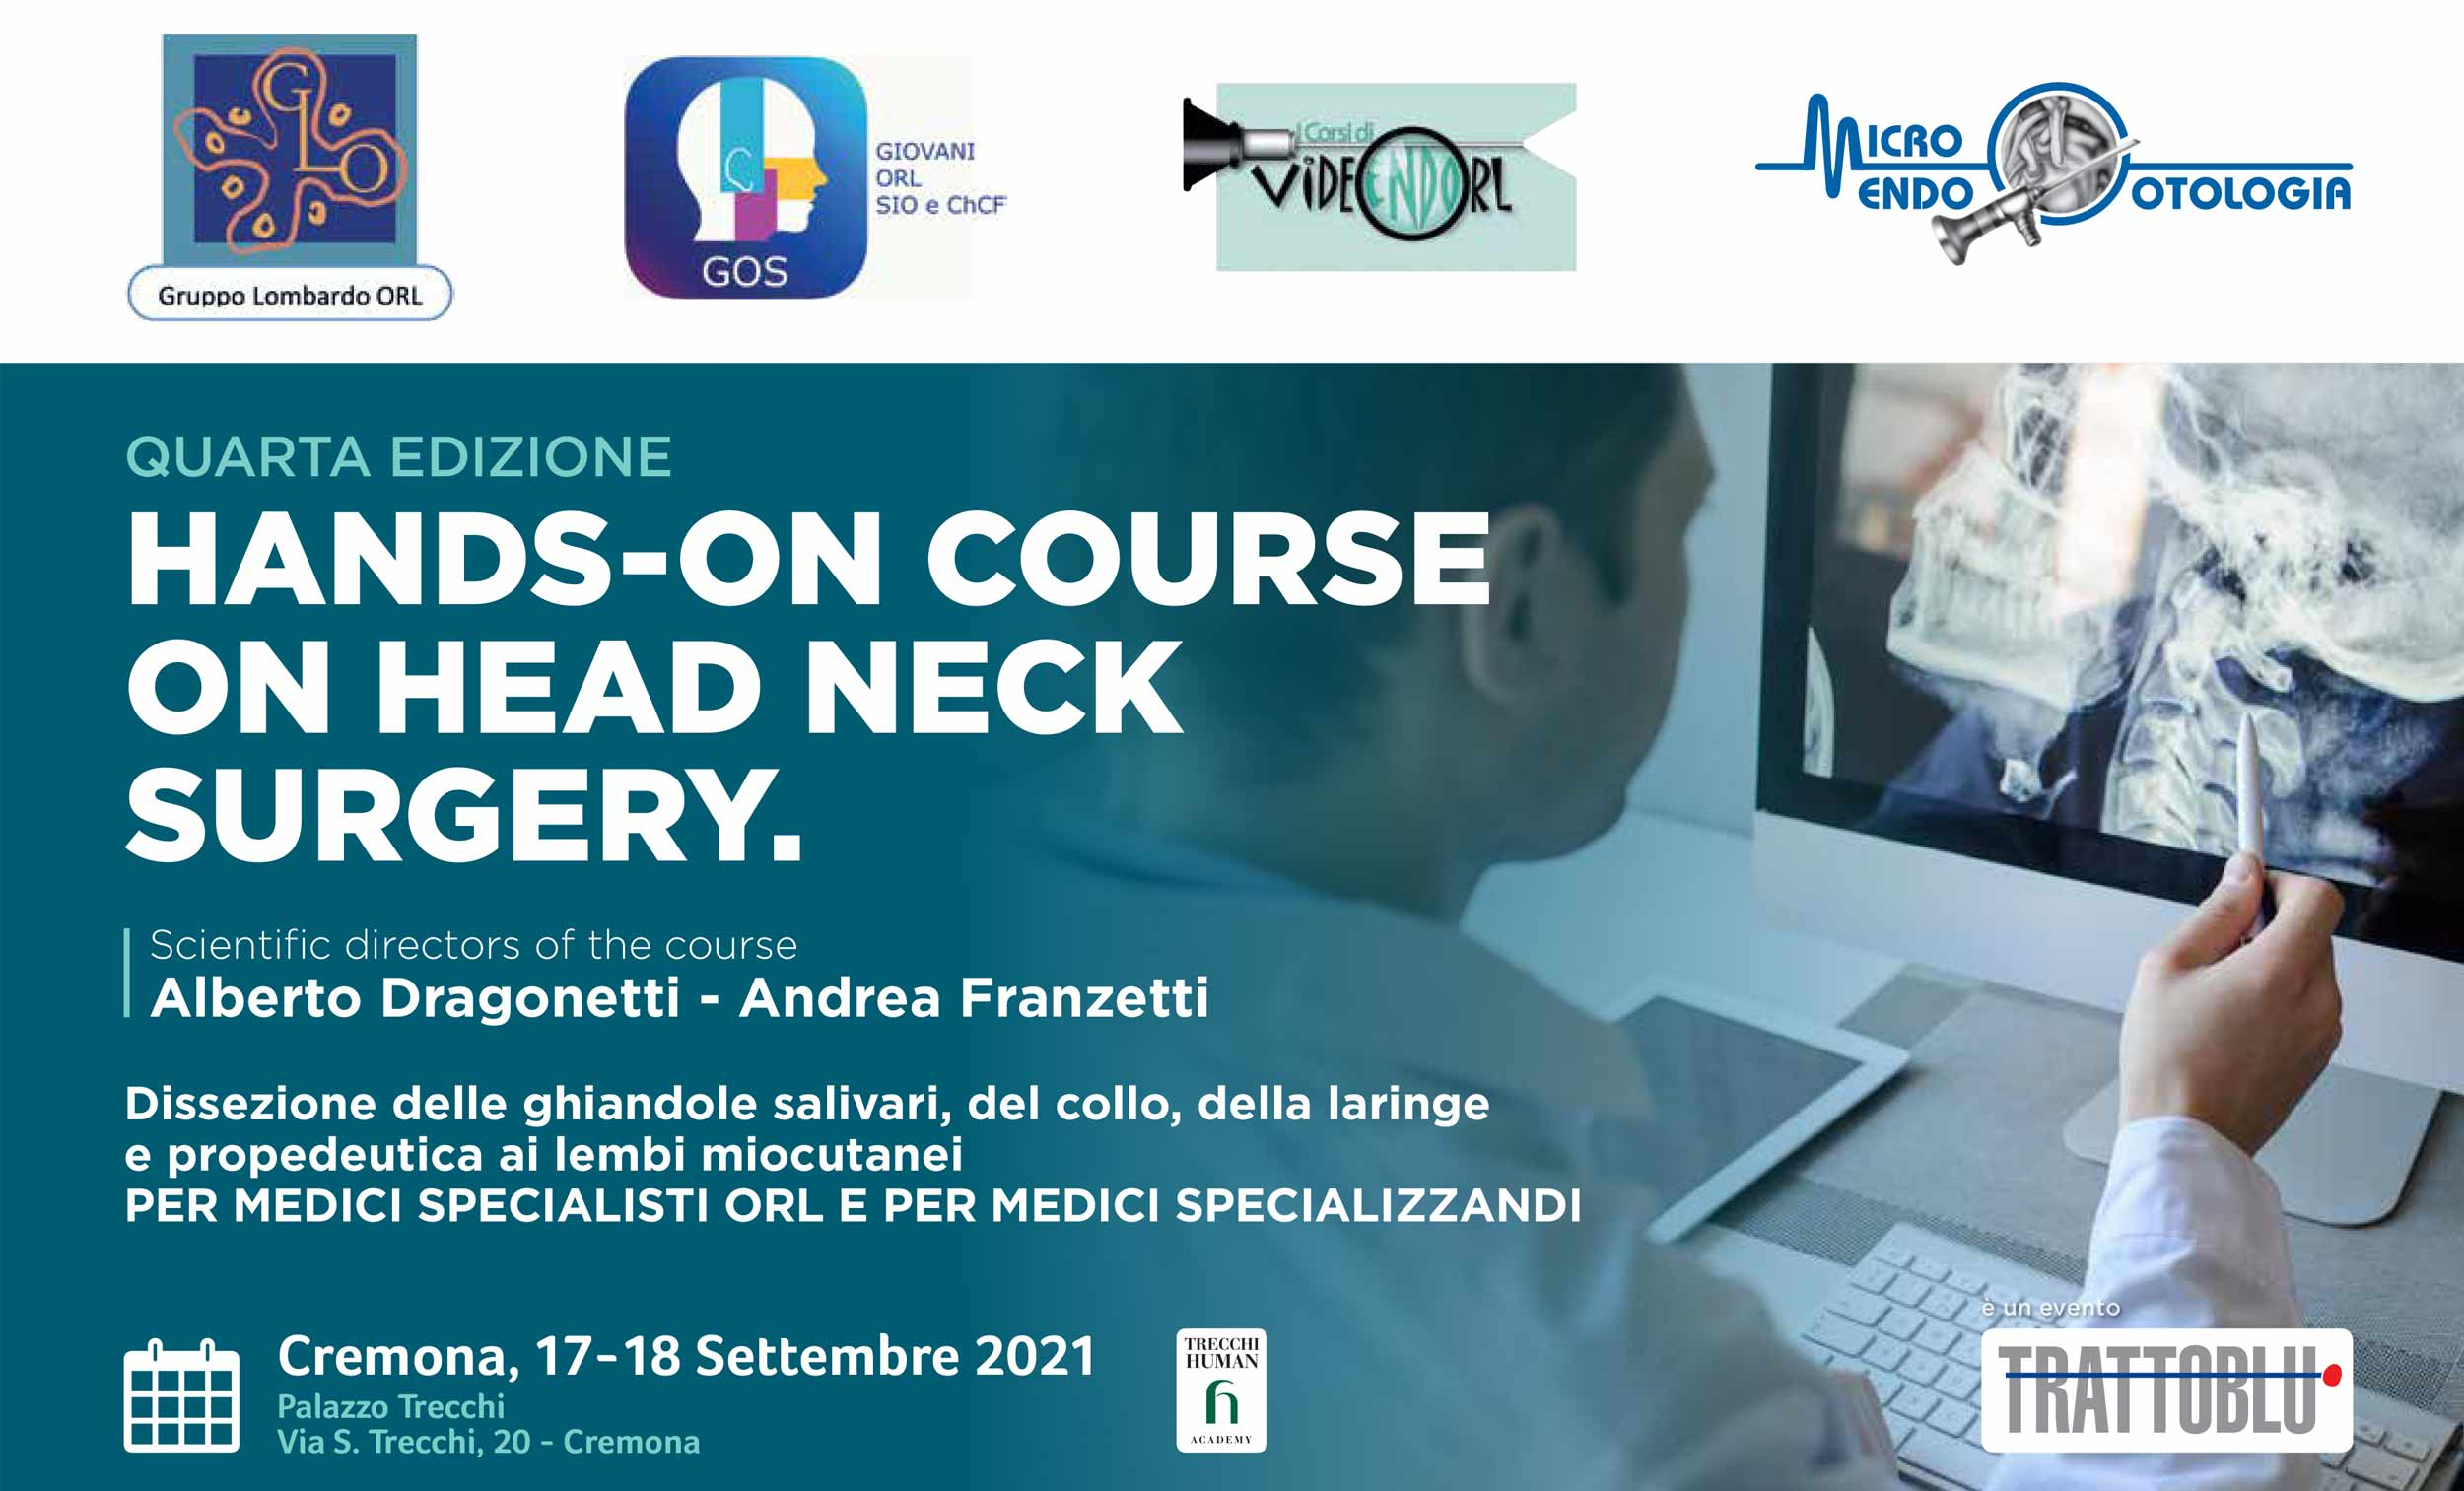 hands-on-course-on-head-neck-surgery_trattoblu